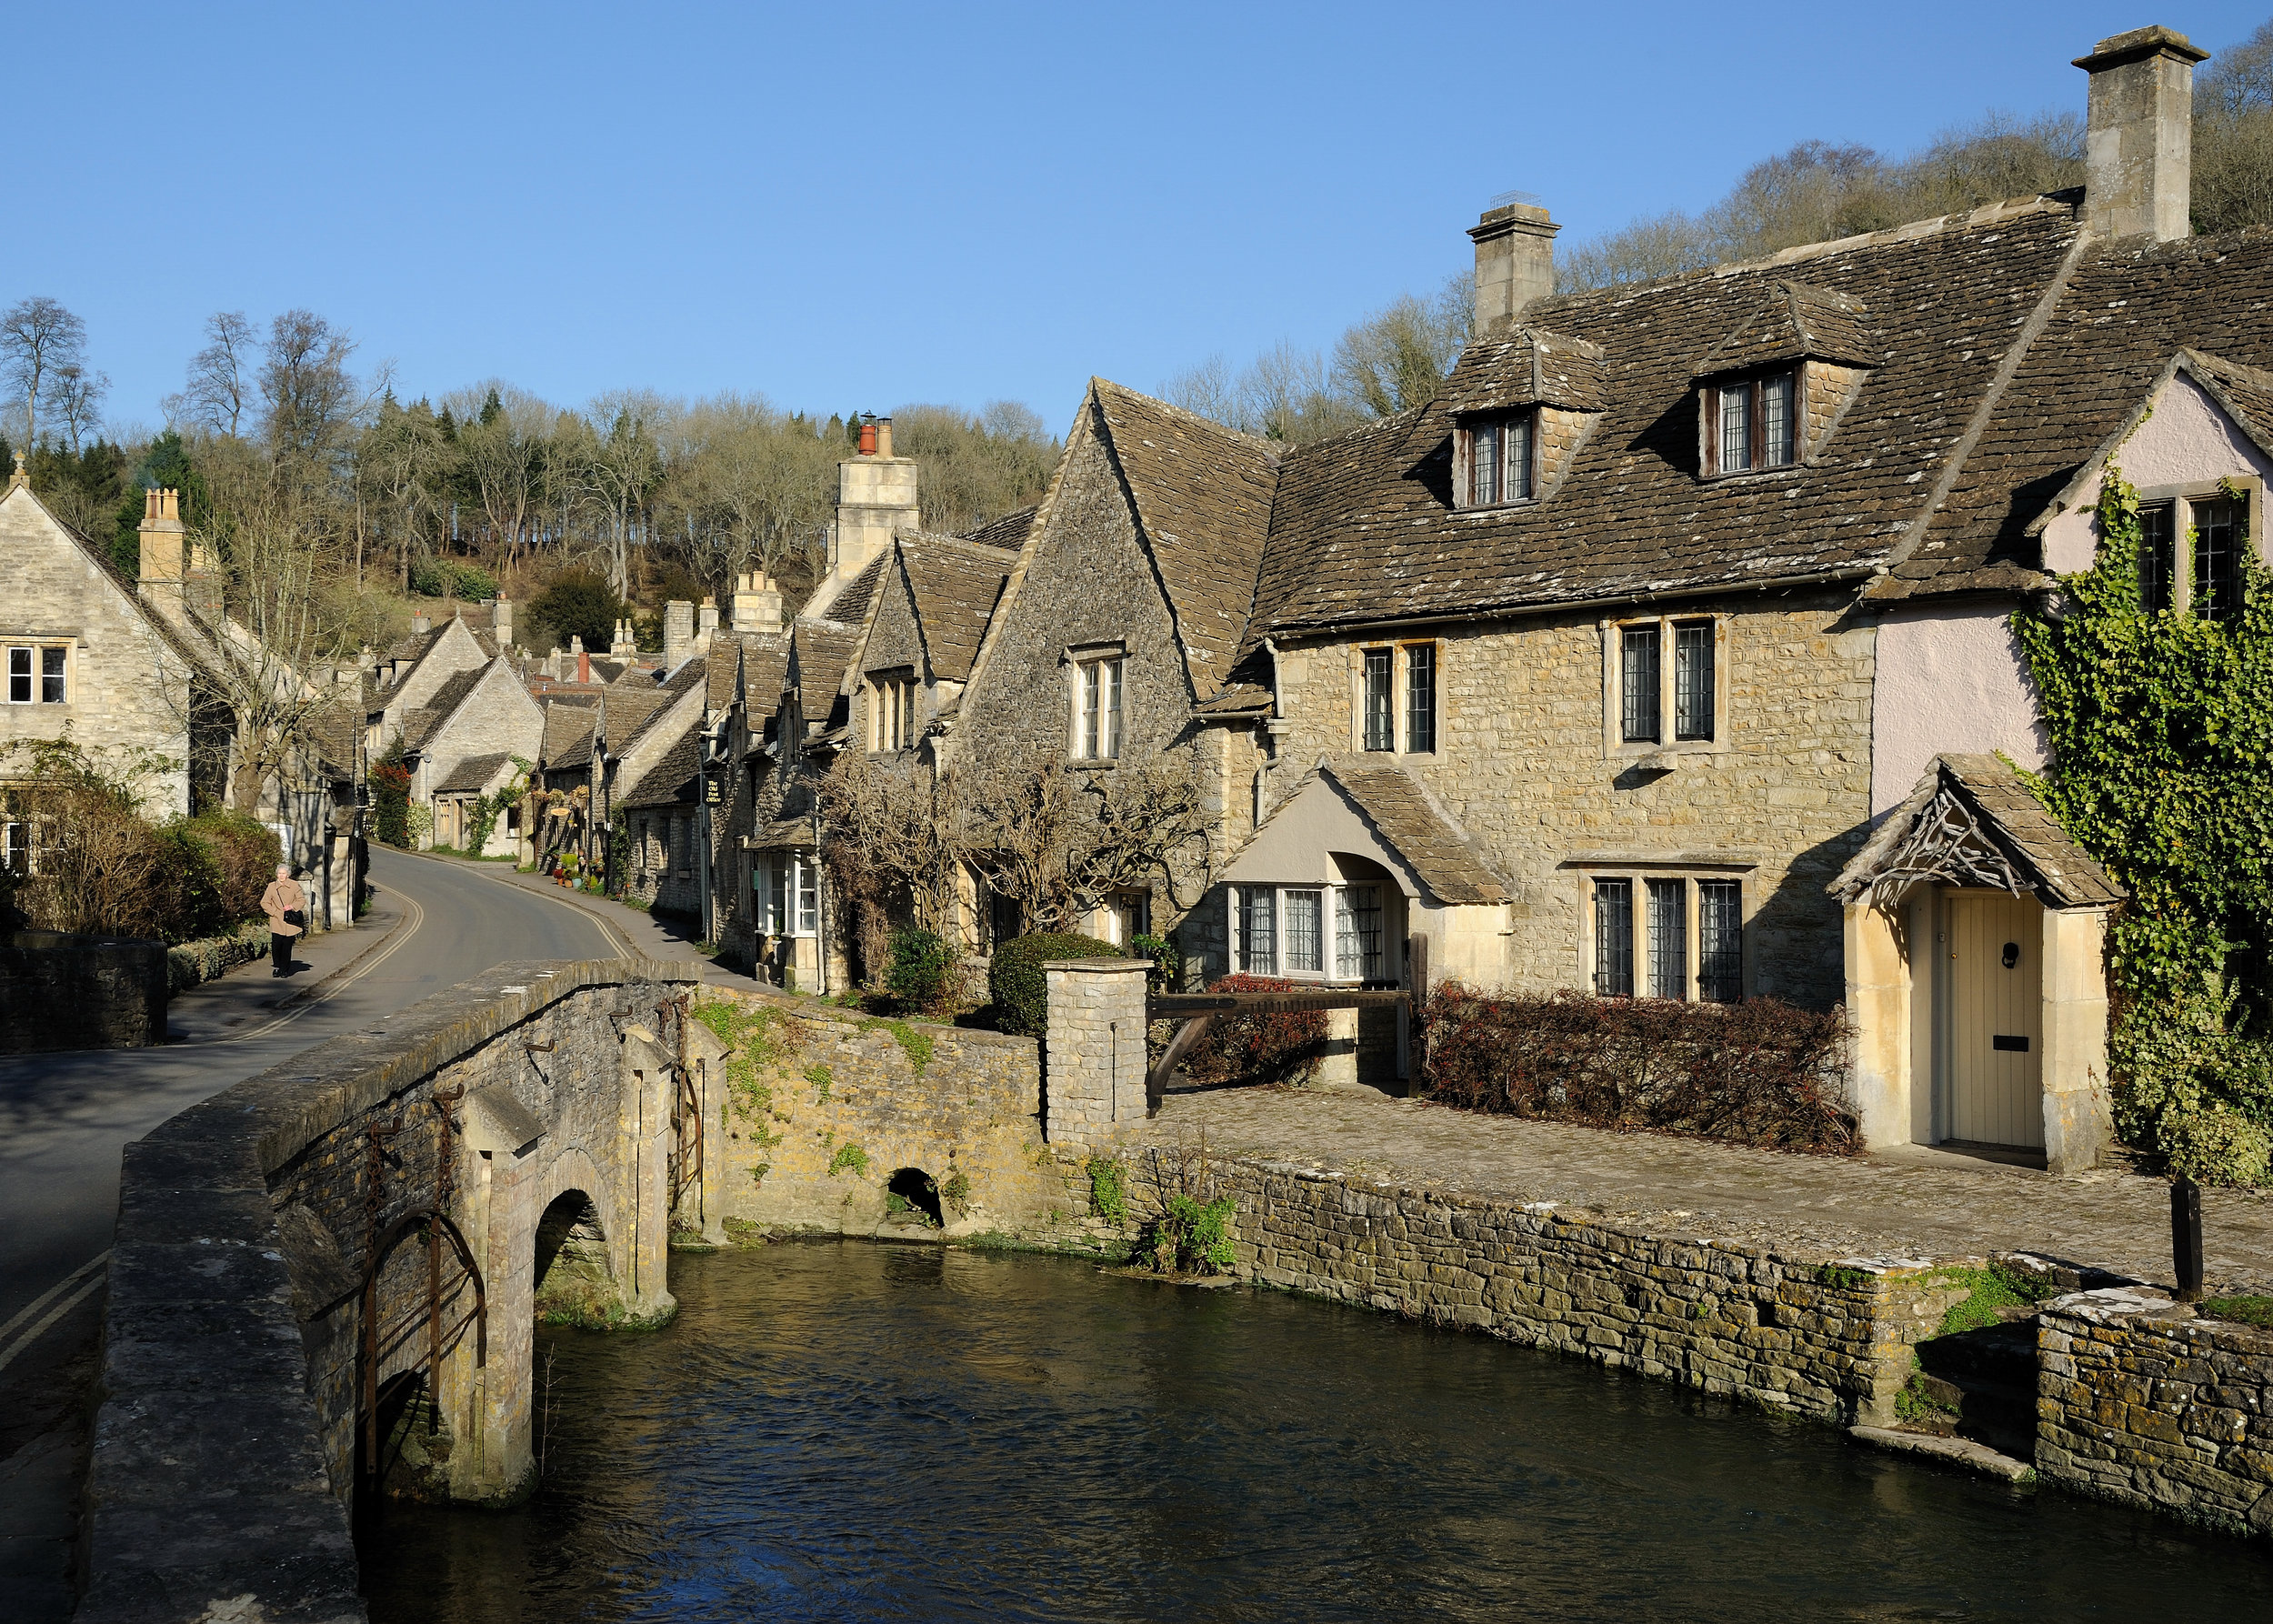 If you're hooked to Sky One's comedy crime drama Agatha Raisin, there's a chance to slink through the picturesque Cotswold village of Biddestone where the series is set, during the TV tour.